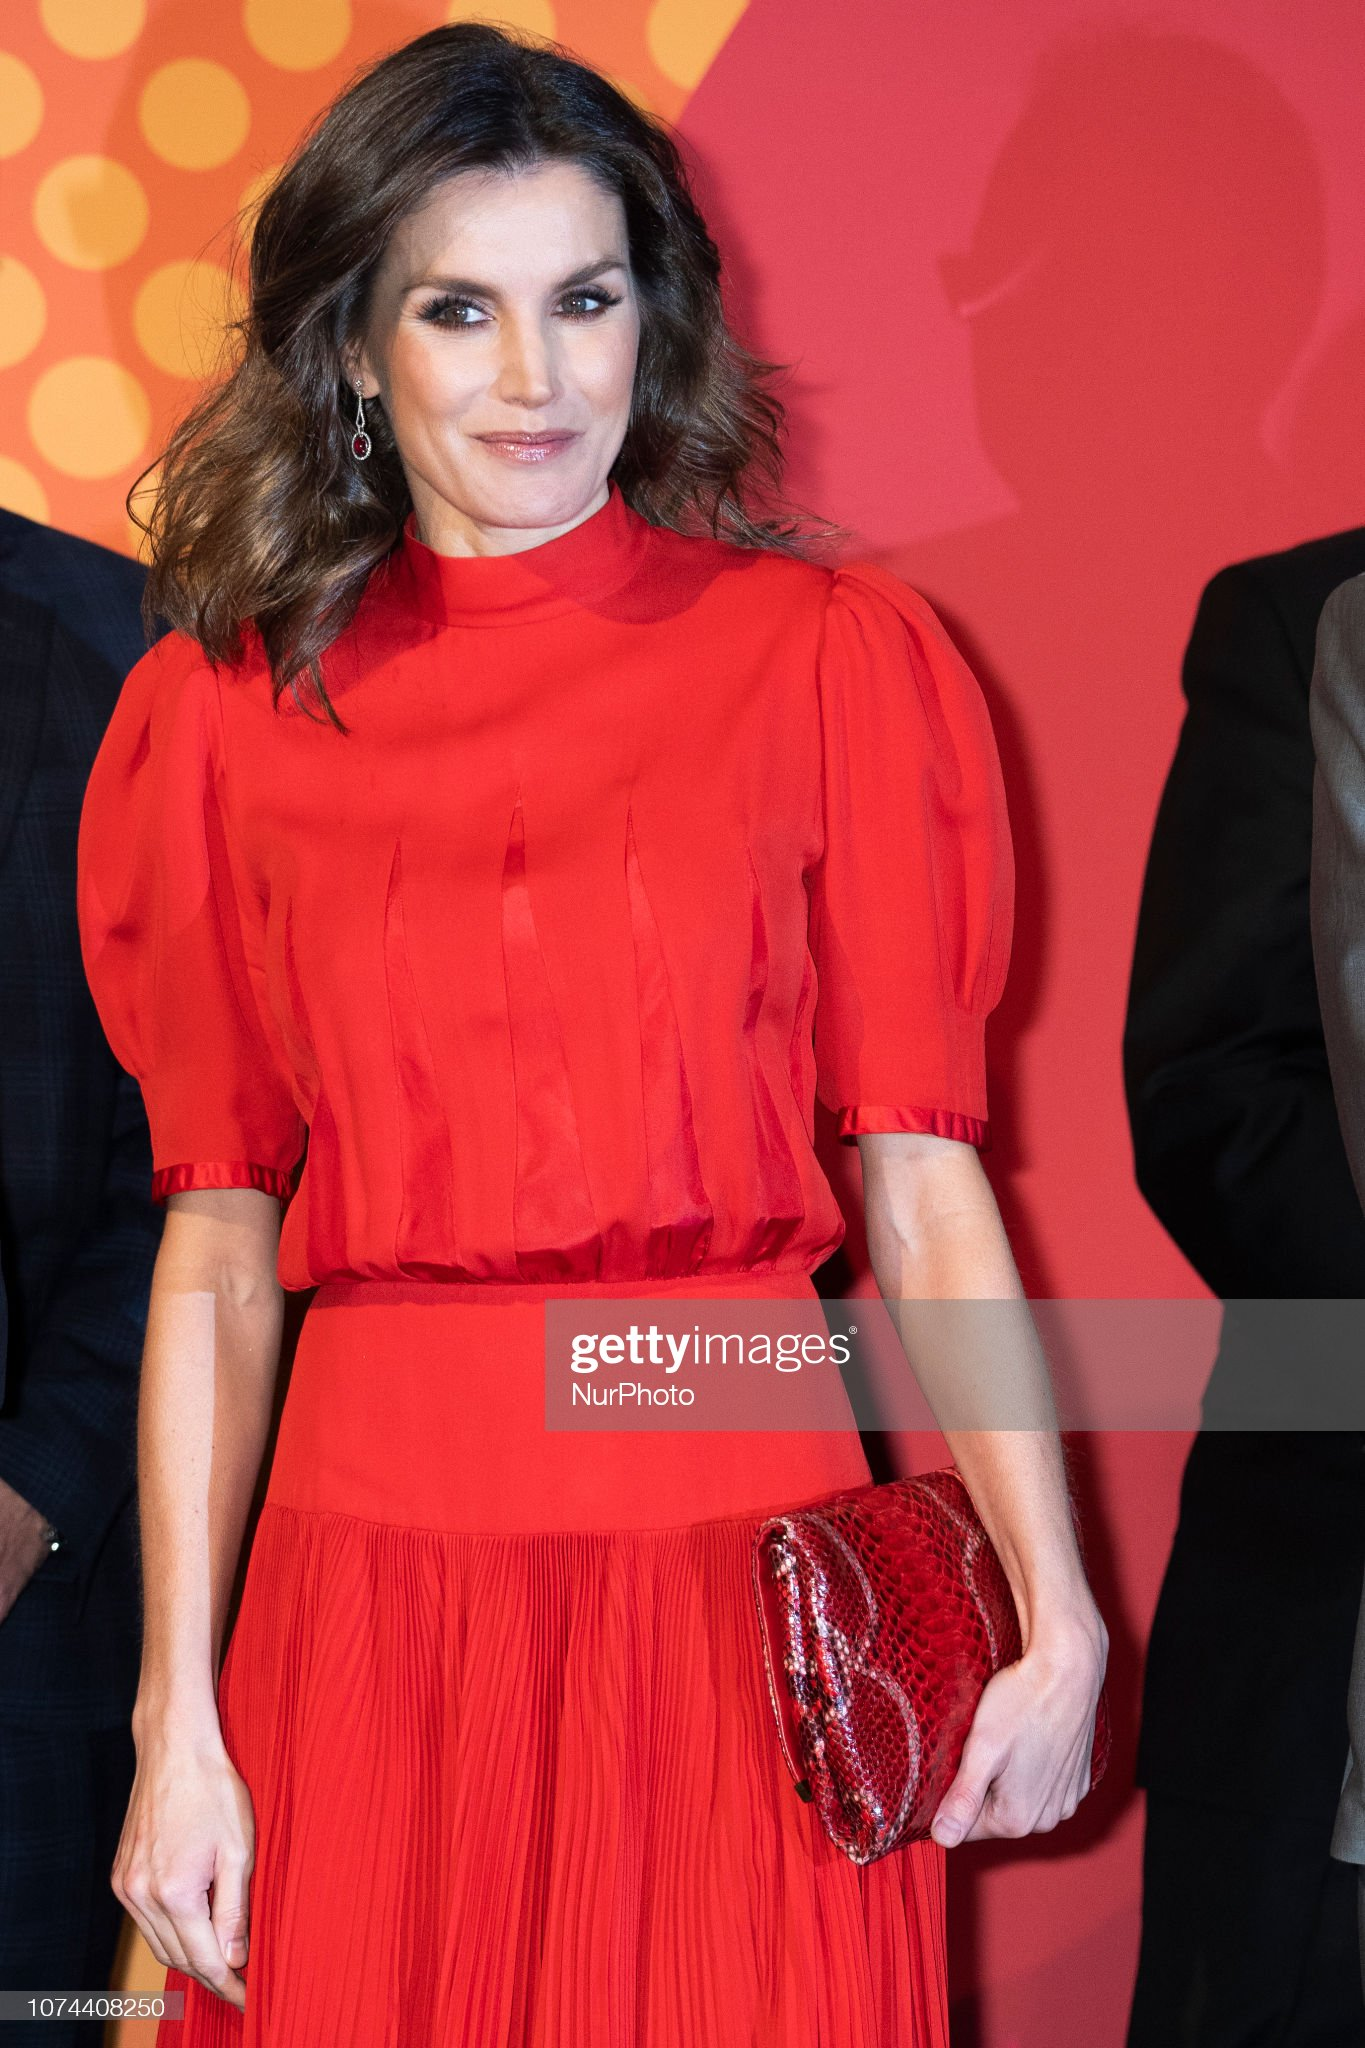 Queen Letizia Of Spain Attends National Fashion Awards : News Photo